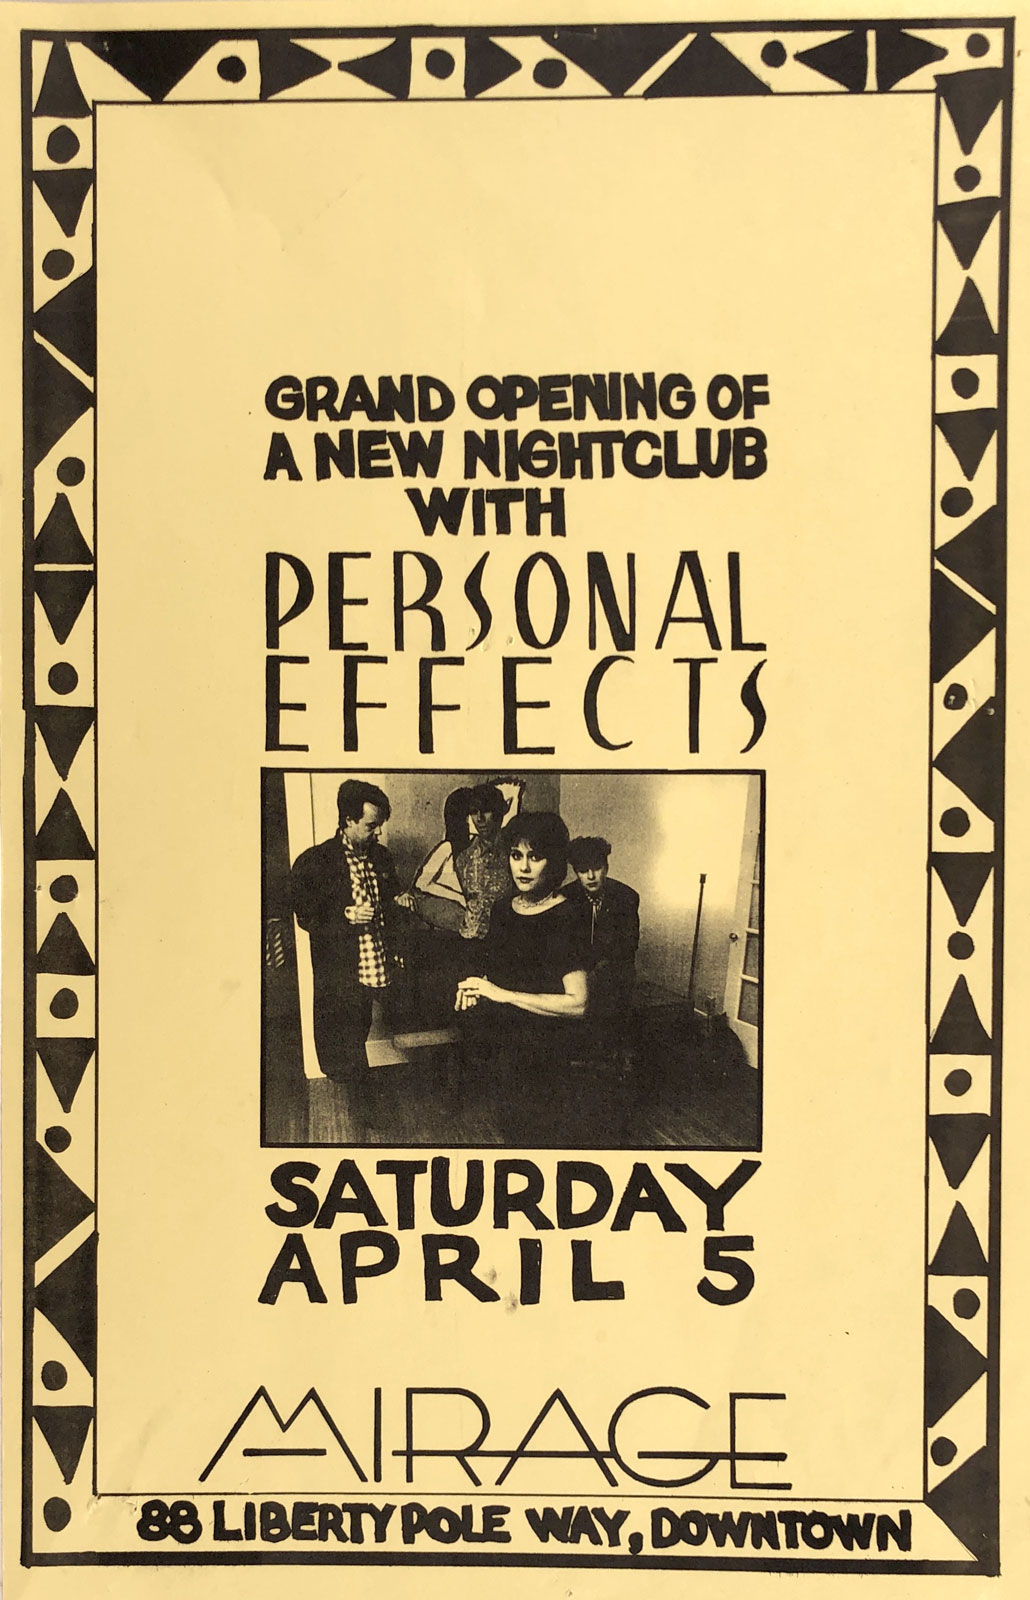 Poster for Personal Effects at Mirage in Rochester, New York on 04.05.1986. This was the grand opening of Mirage on Liberty Pole Way.